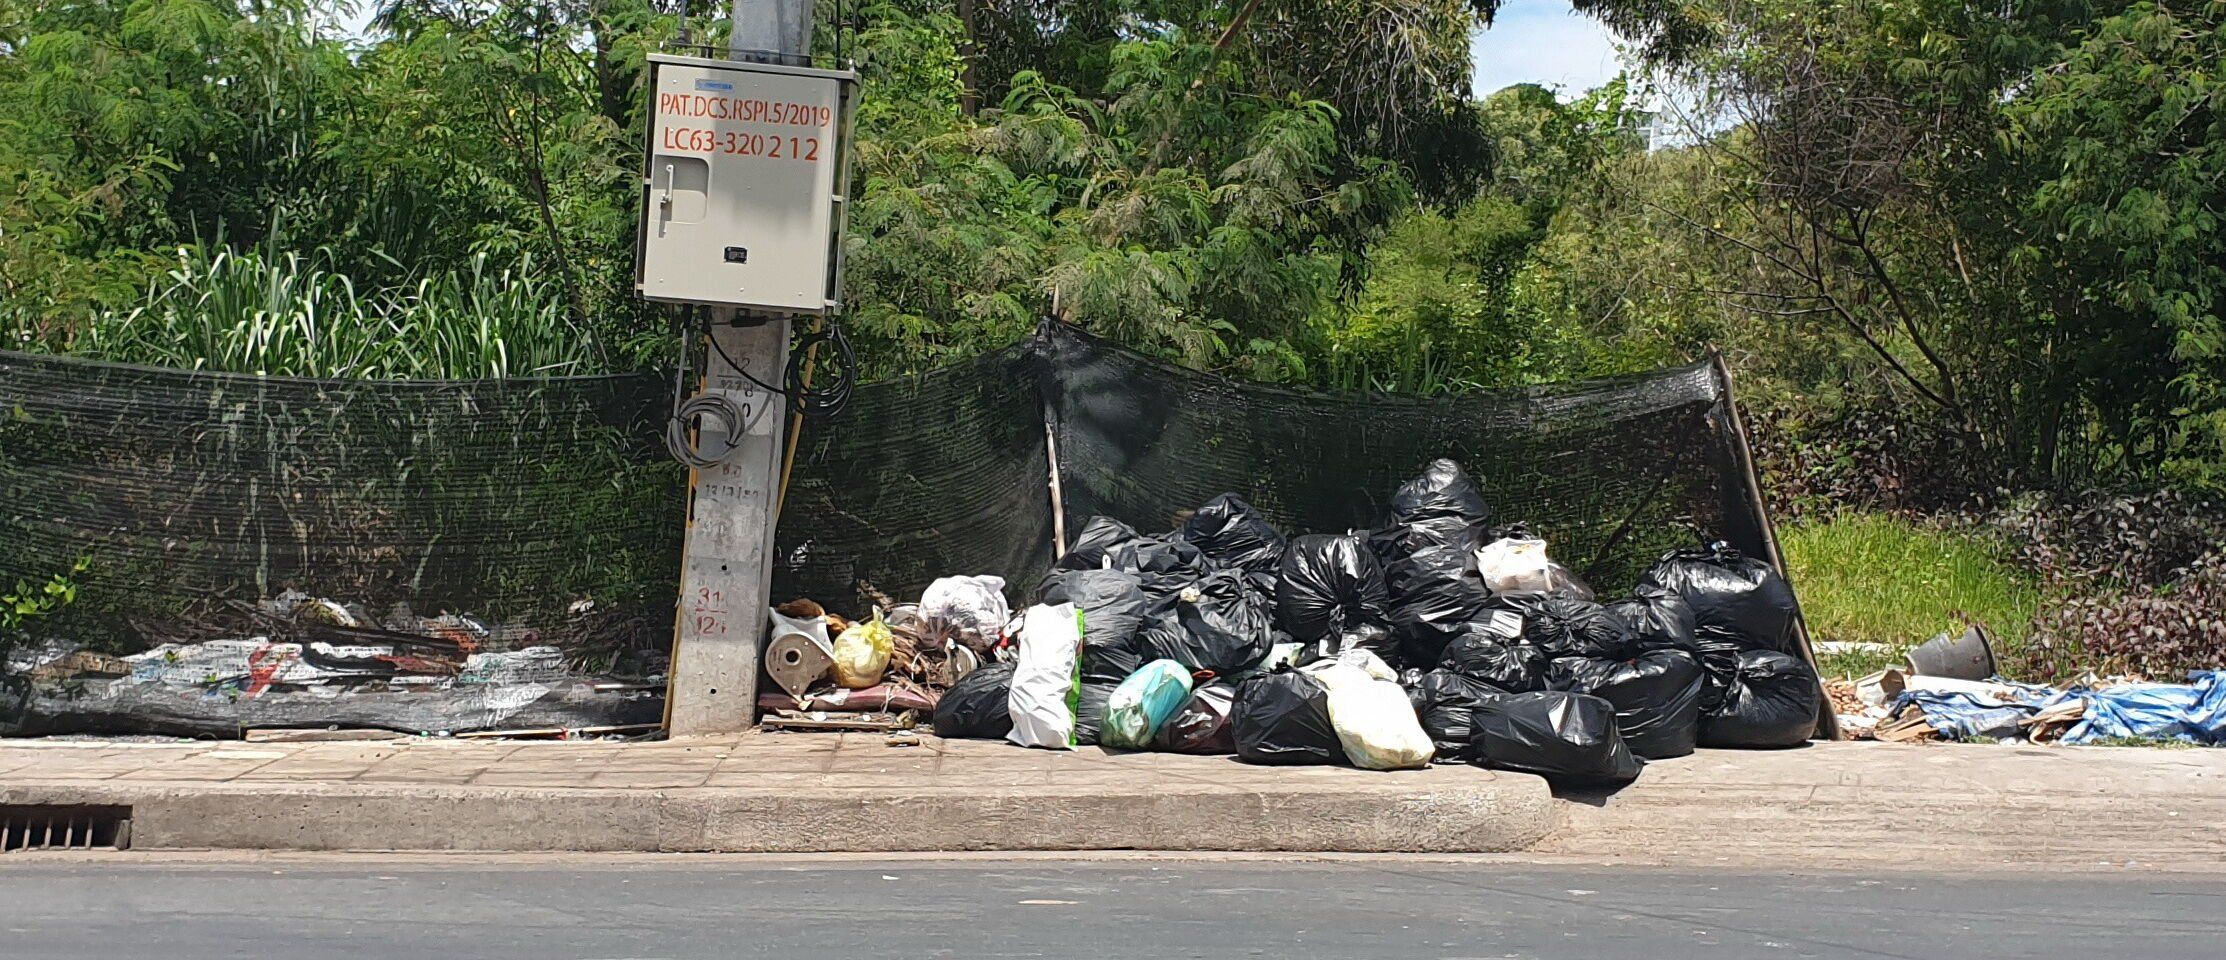 Island of rubbish: Koh Samui's pollution problem remains unsolved   News by Thaiger